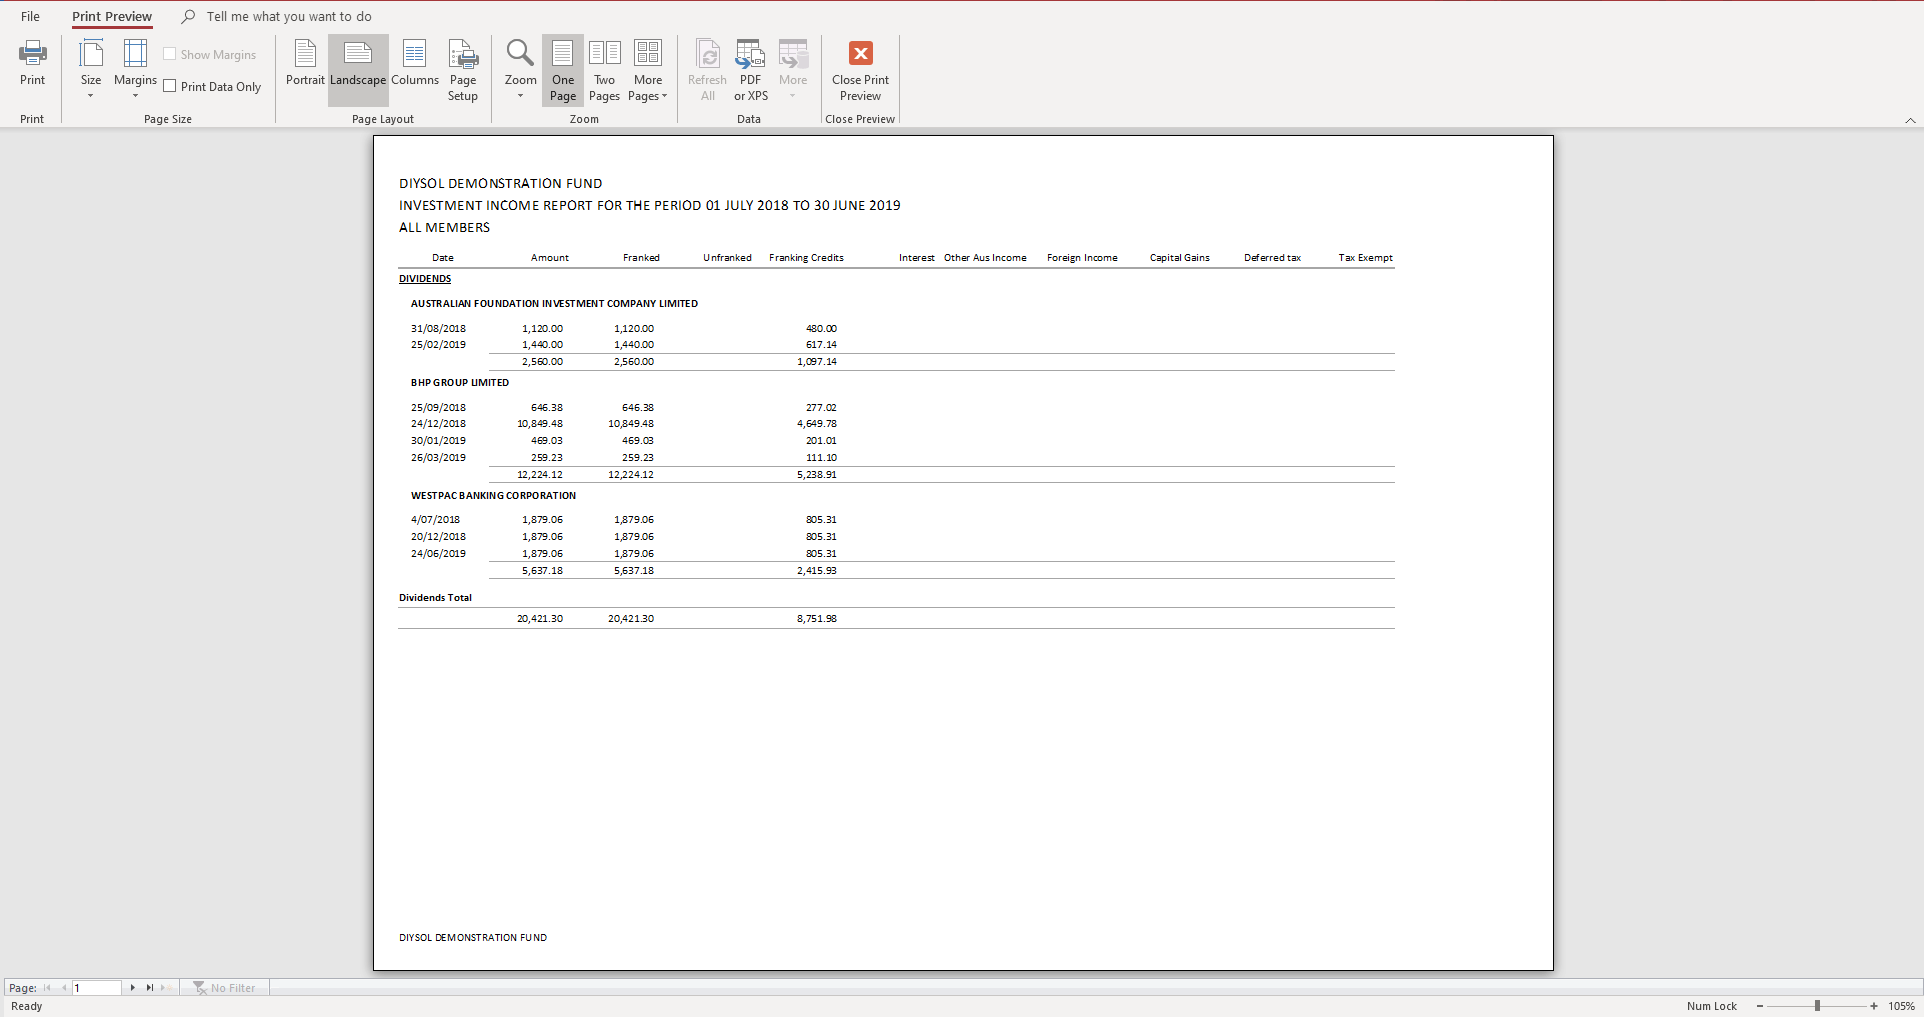 Investment Income Report